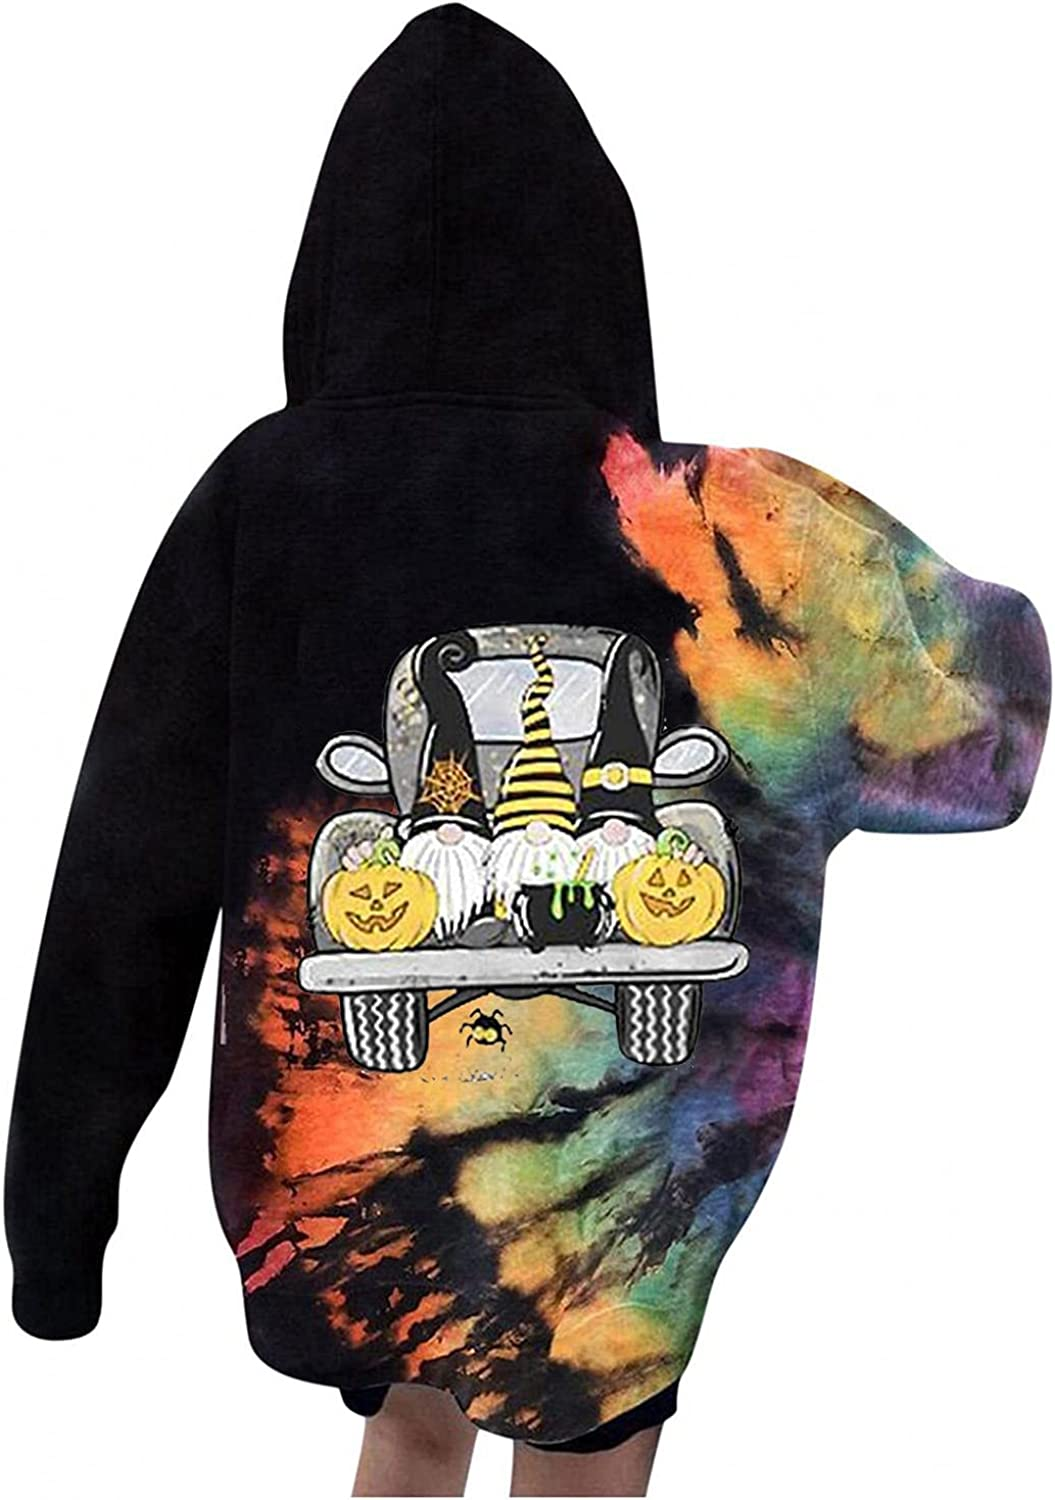 Hoodies for Womens, Tie Dye Graphic Printed Drawstring Sweatshirts Long Sleeve Shirts Loose Hooded Pullover Tops